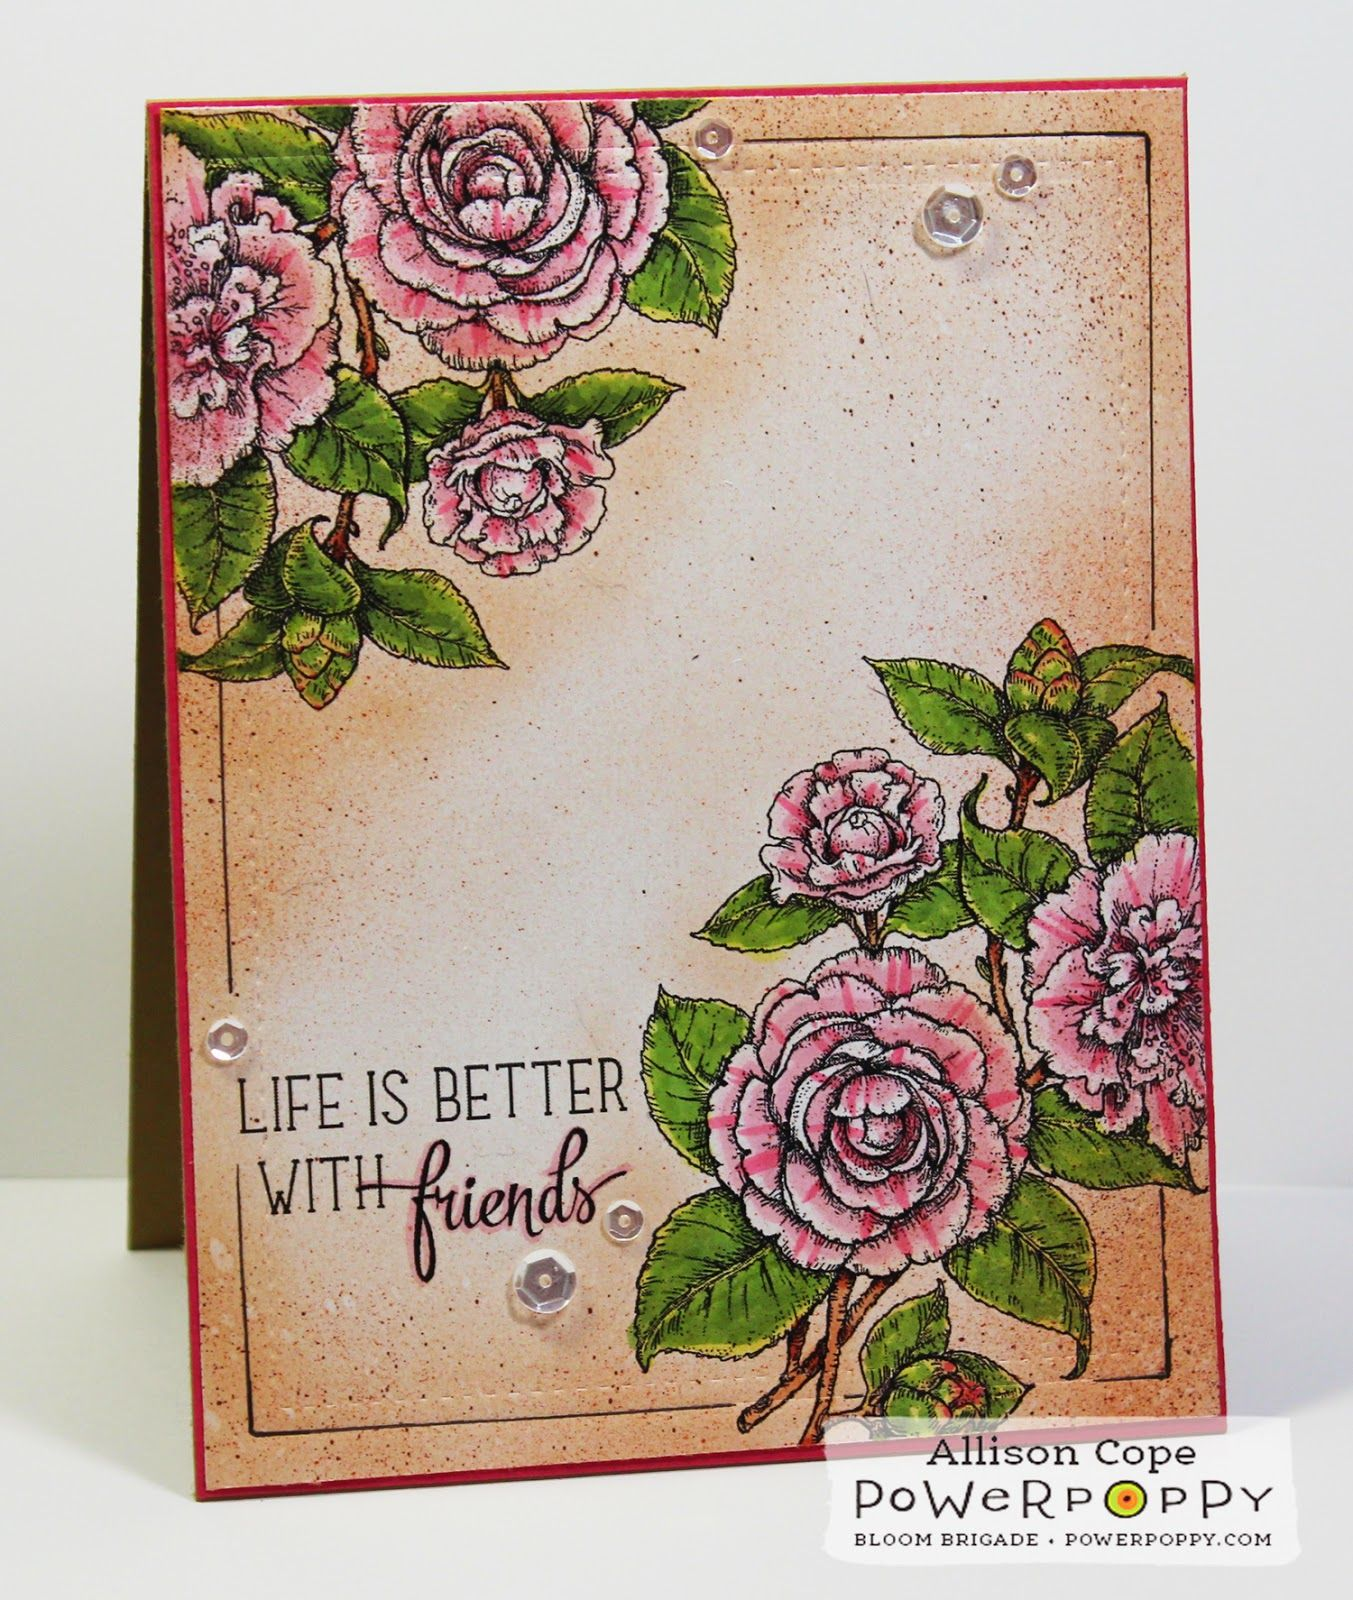 Your Memories with Ally: Winter Blitz: Camellias digital stamp by Power Poppy, card design by Allison Cope.